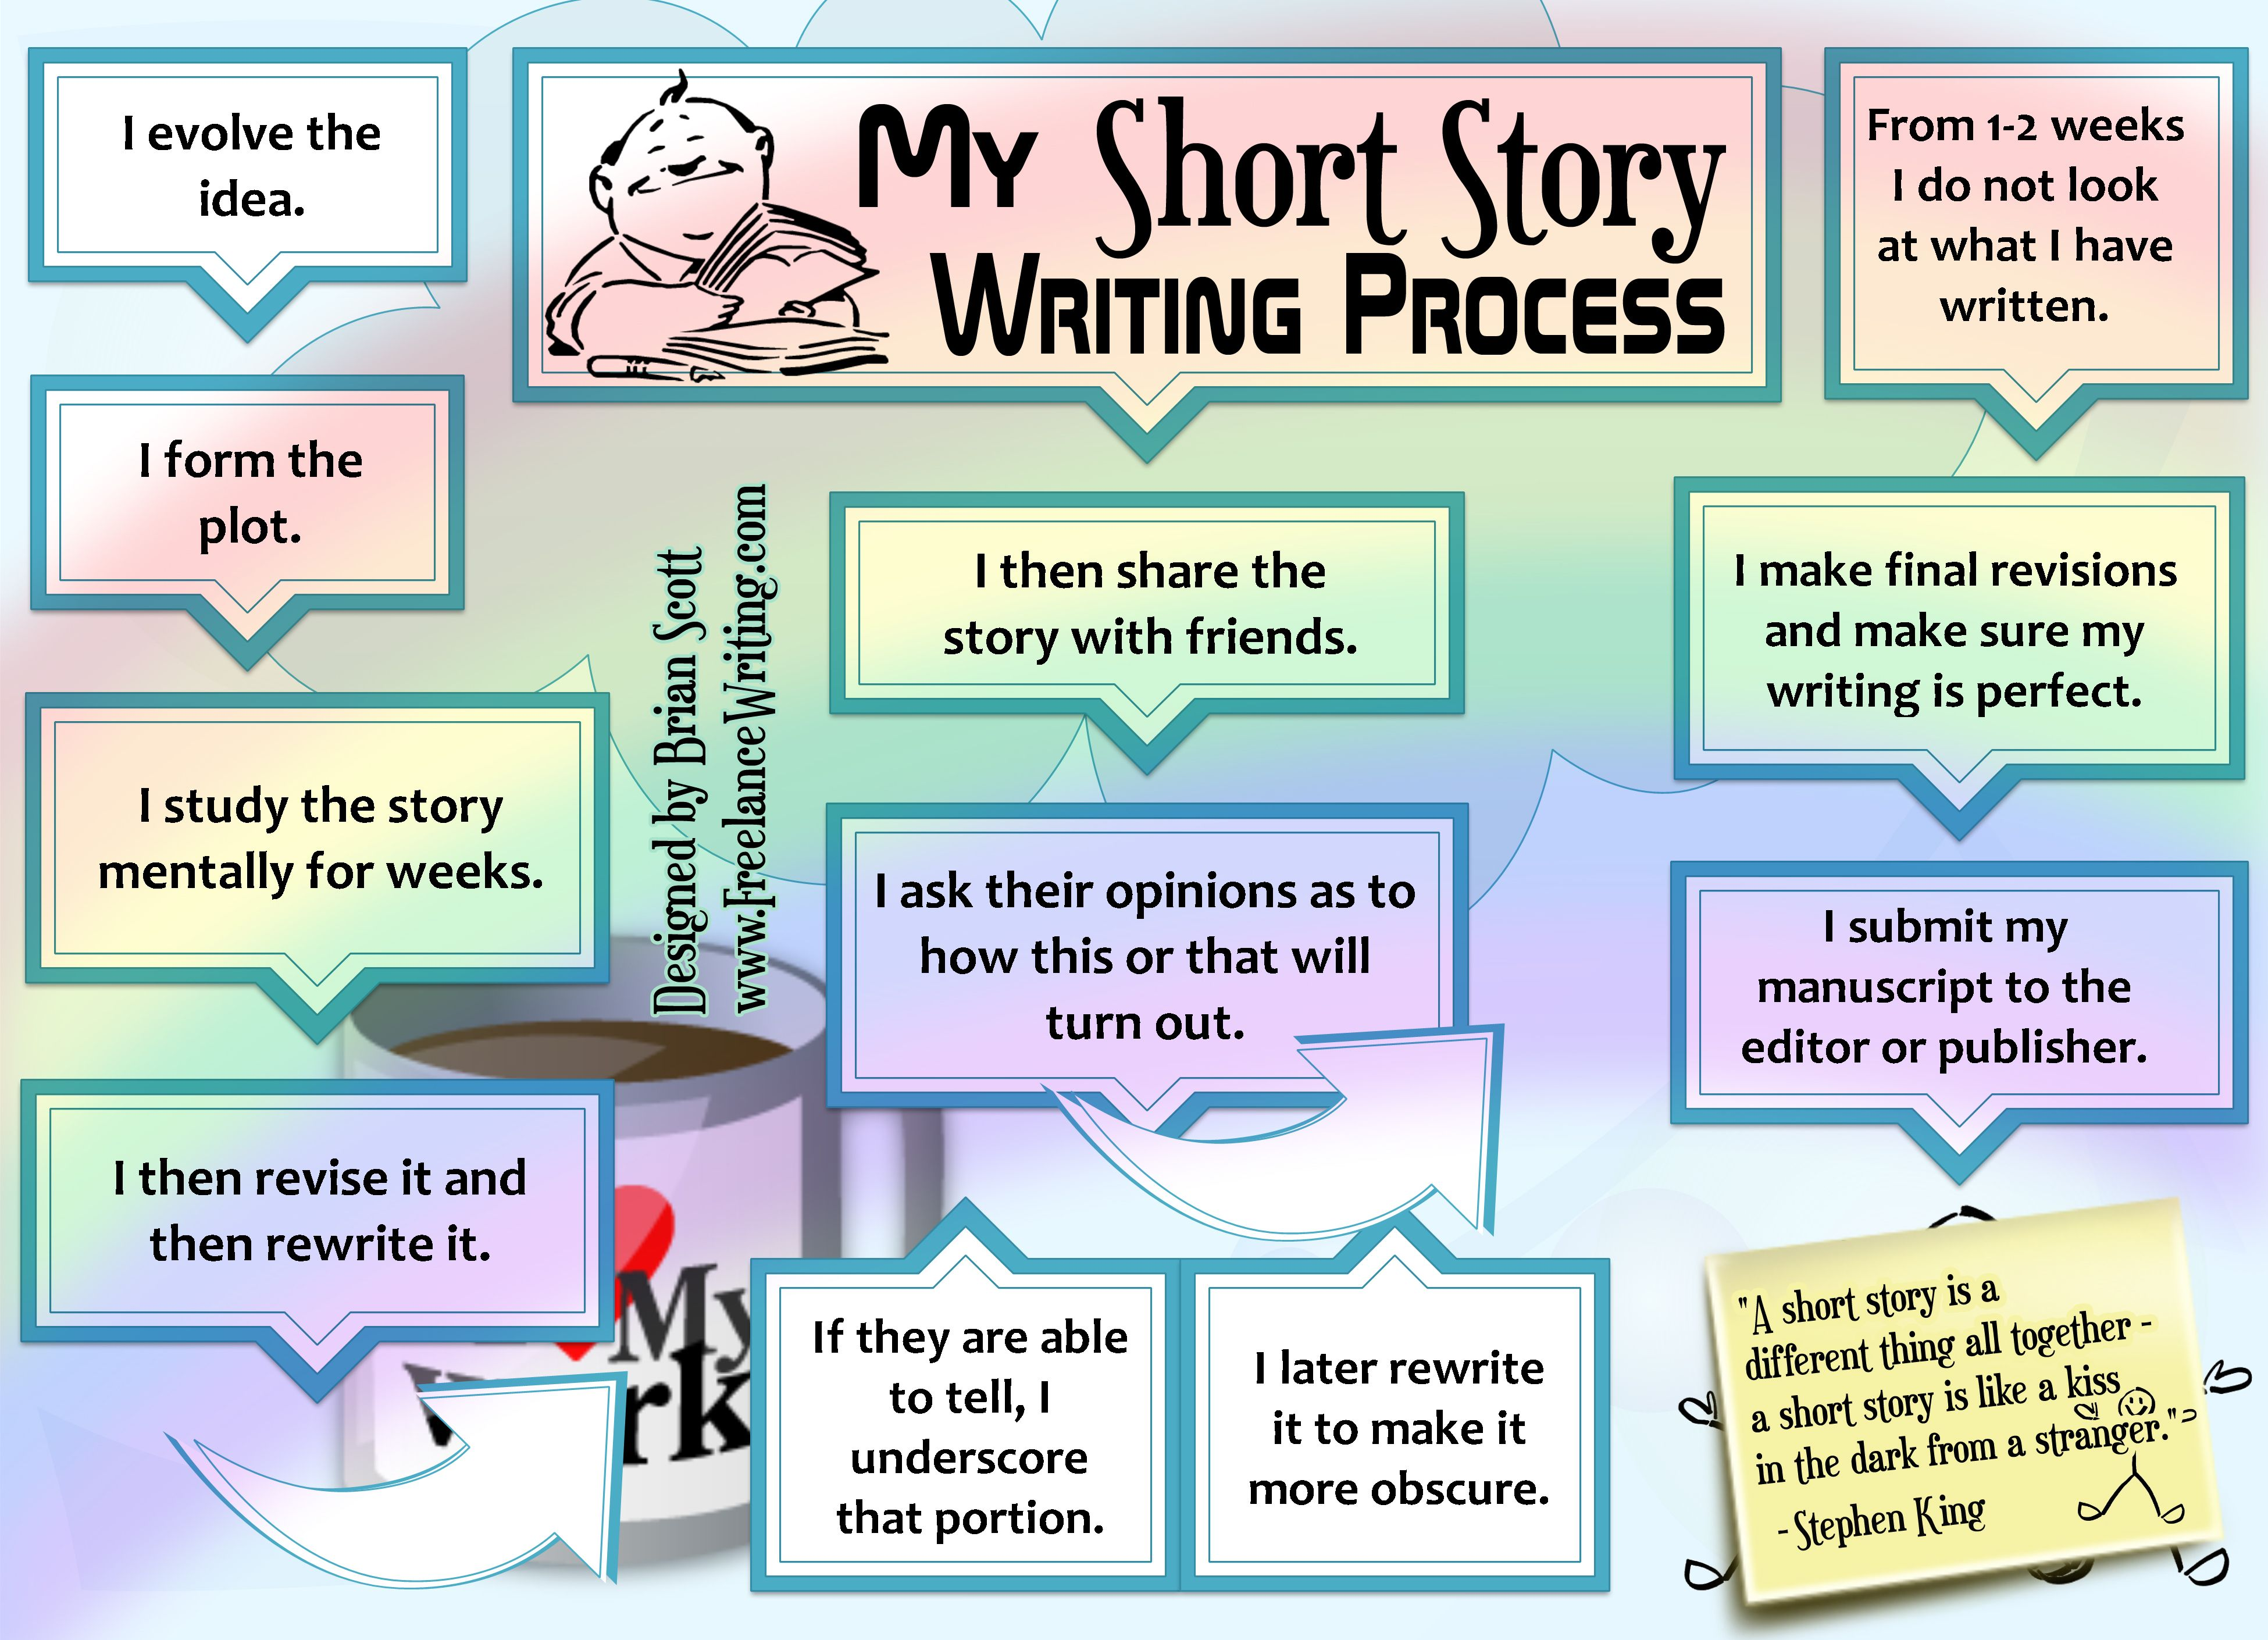 Story writing services